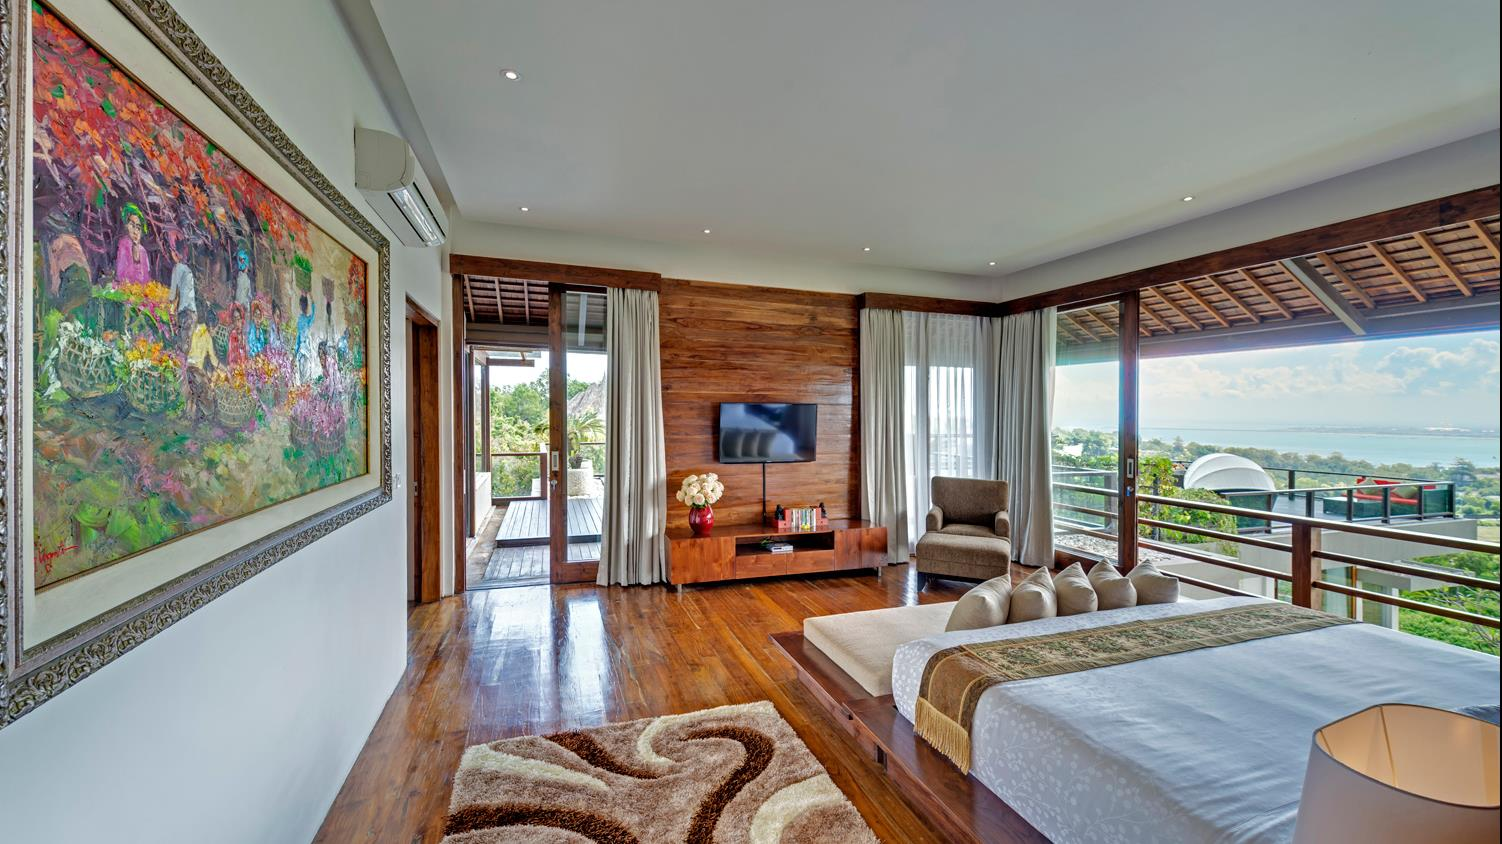 Bedroom with Wooden Floor - Villa Aiko - Jimbaran, Bali